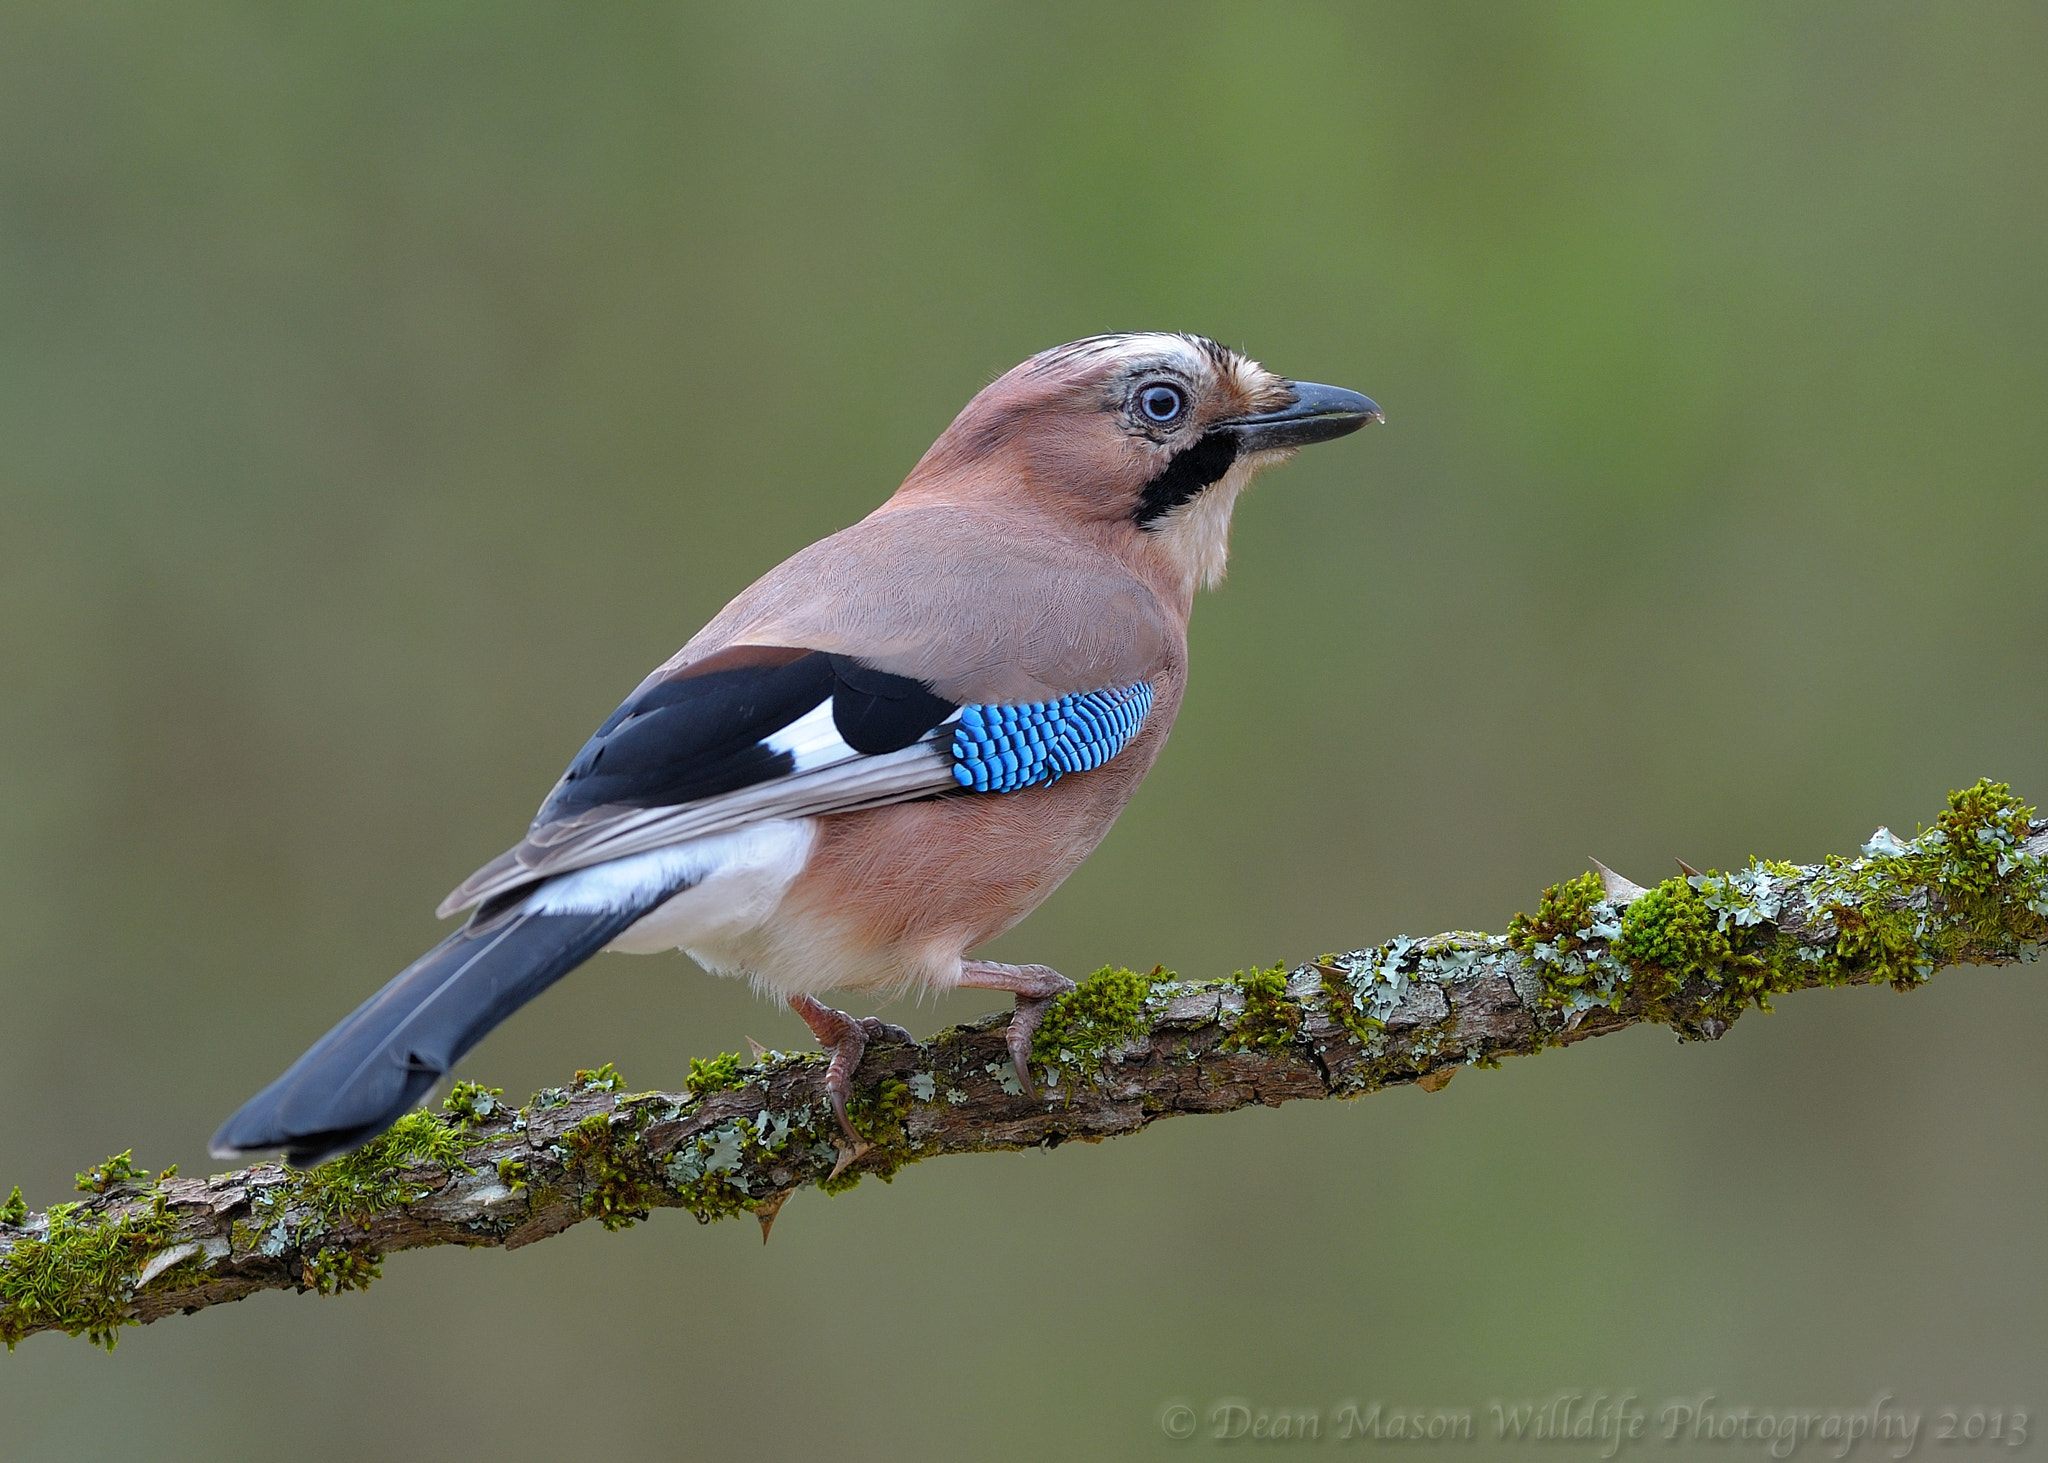 Photograph Thorny Jay  by Dean Mason on 500px